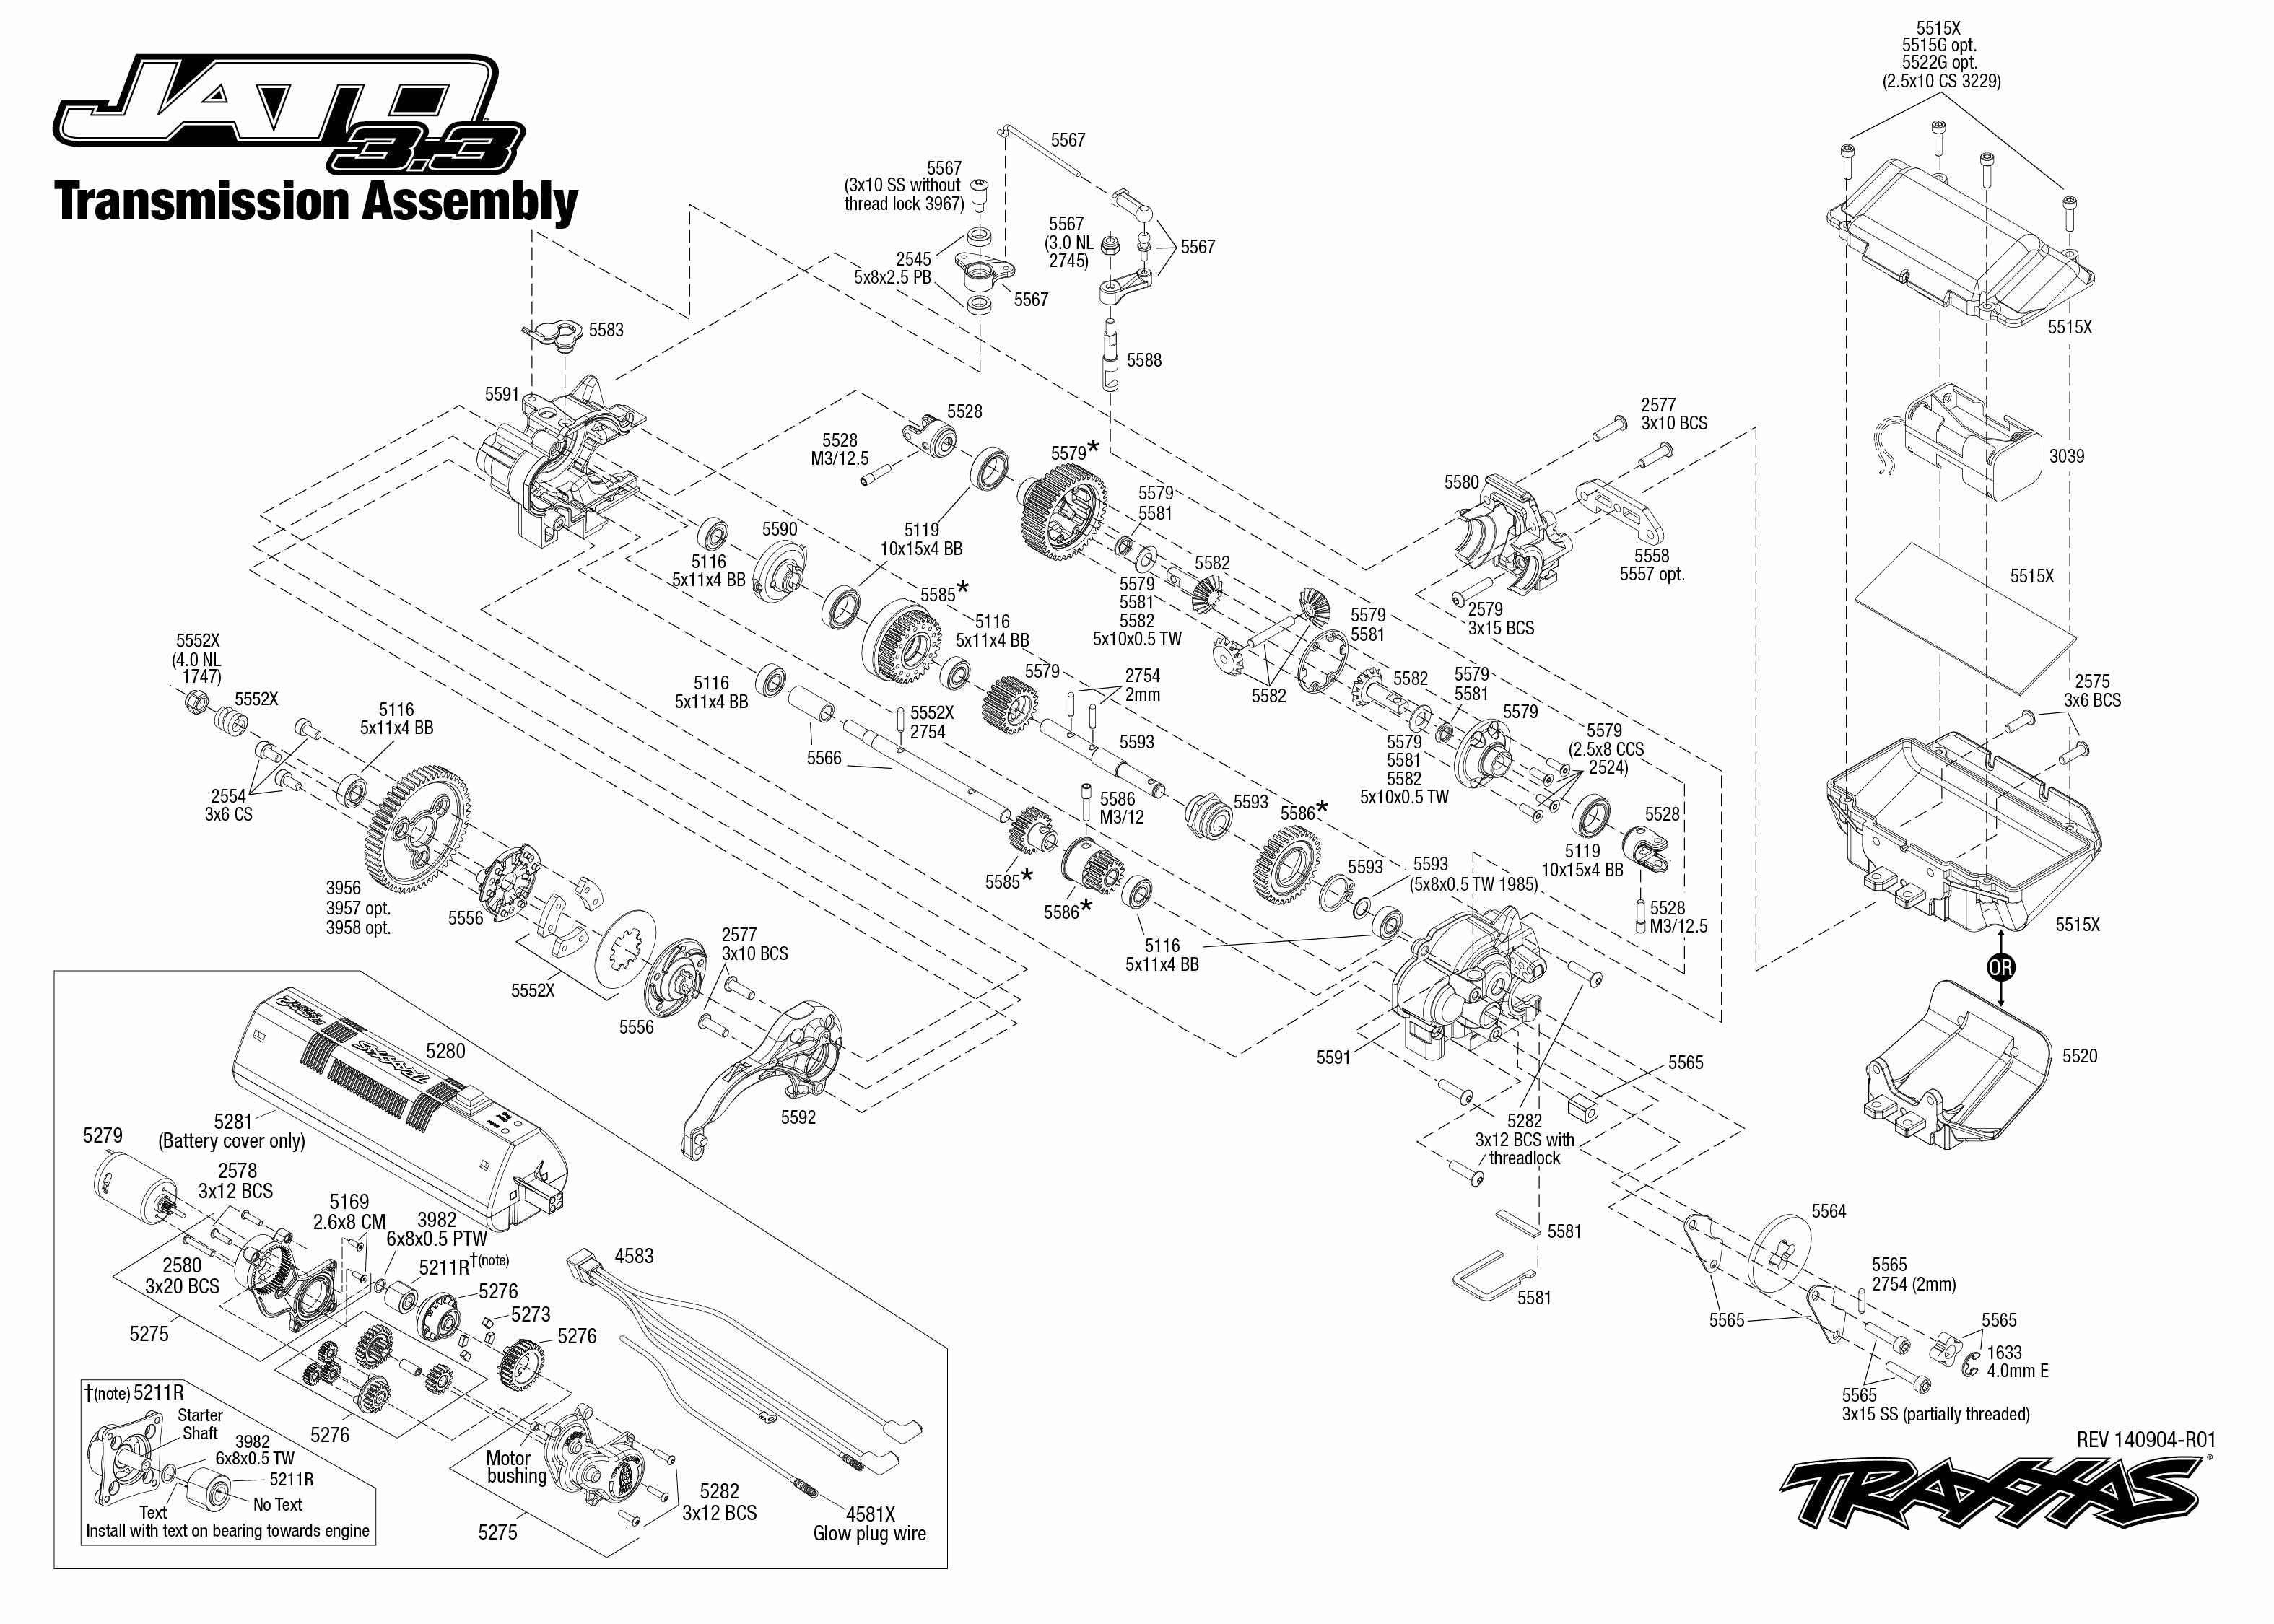 traxxas engine diagram all wiring diagram data Gas Turbine Diagram manual traxxas jato jetcat engine diagram how to tune a jato 3 3 after break in